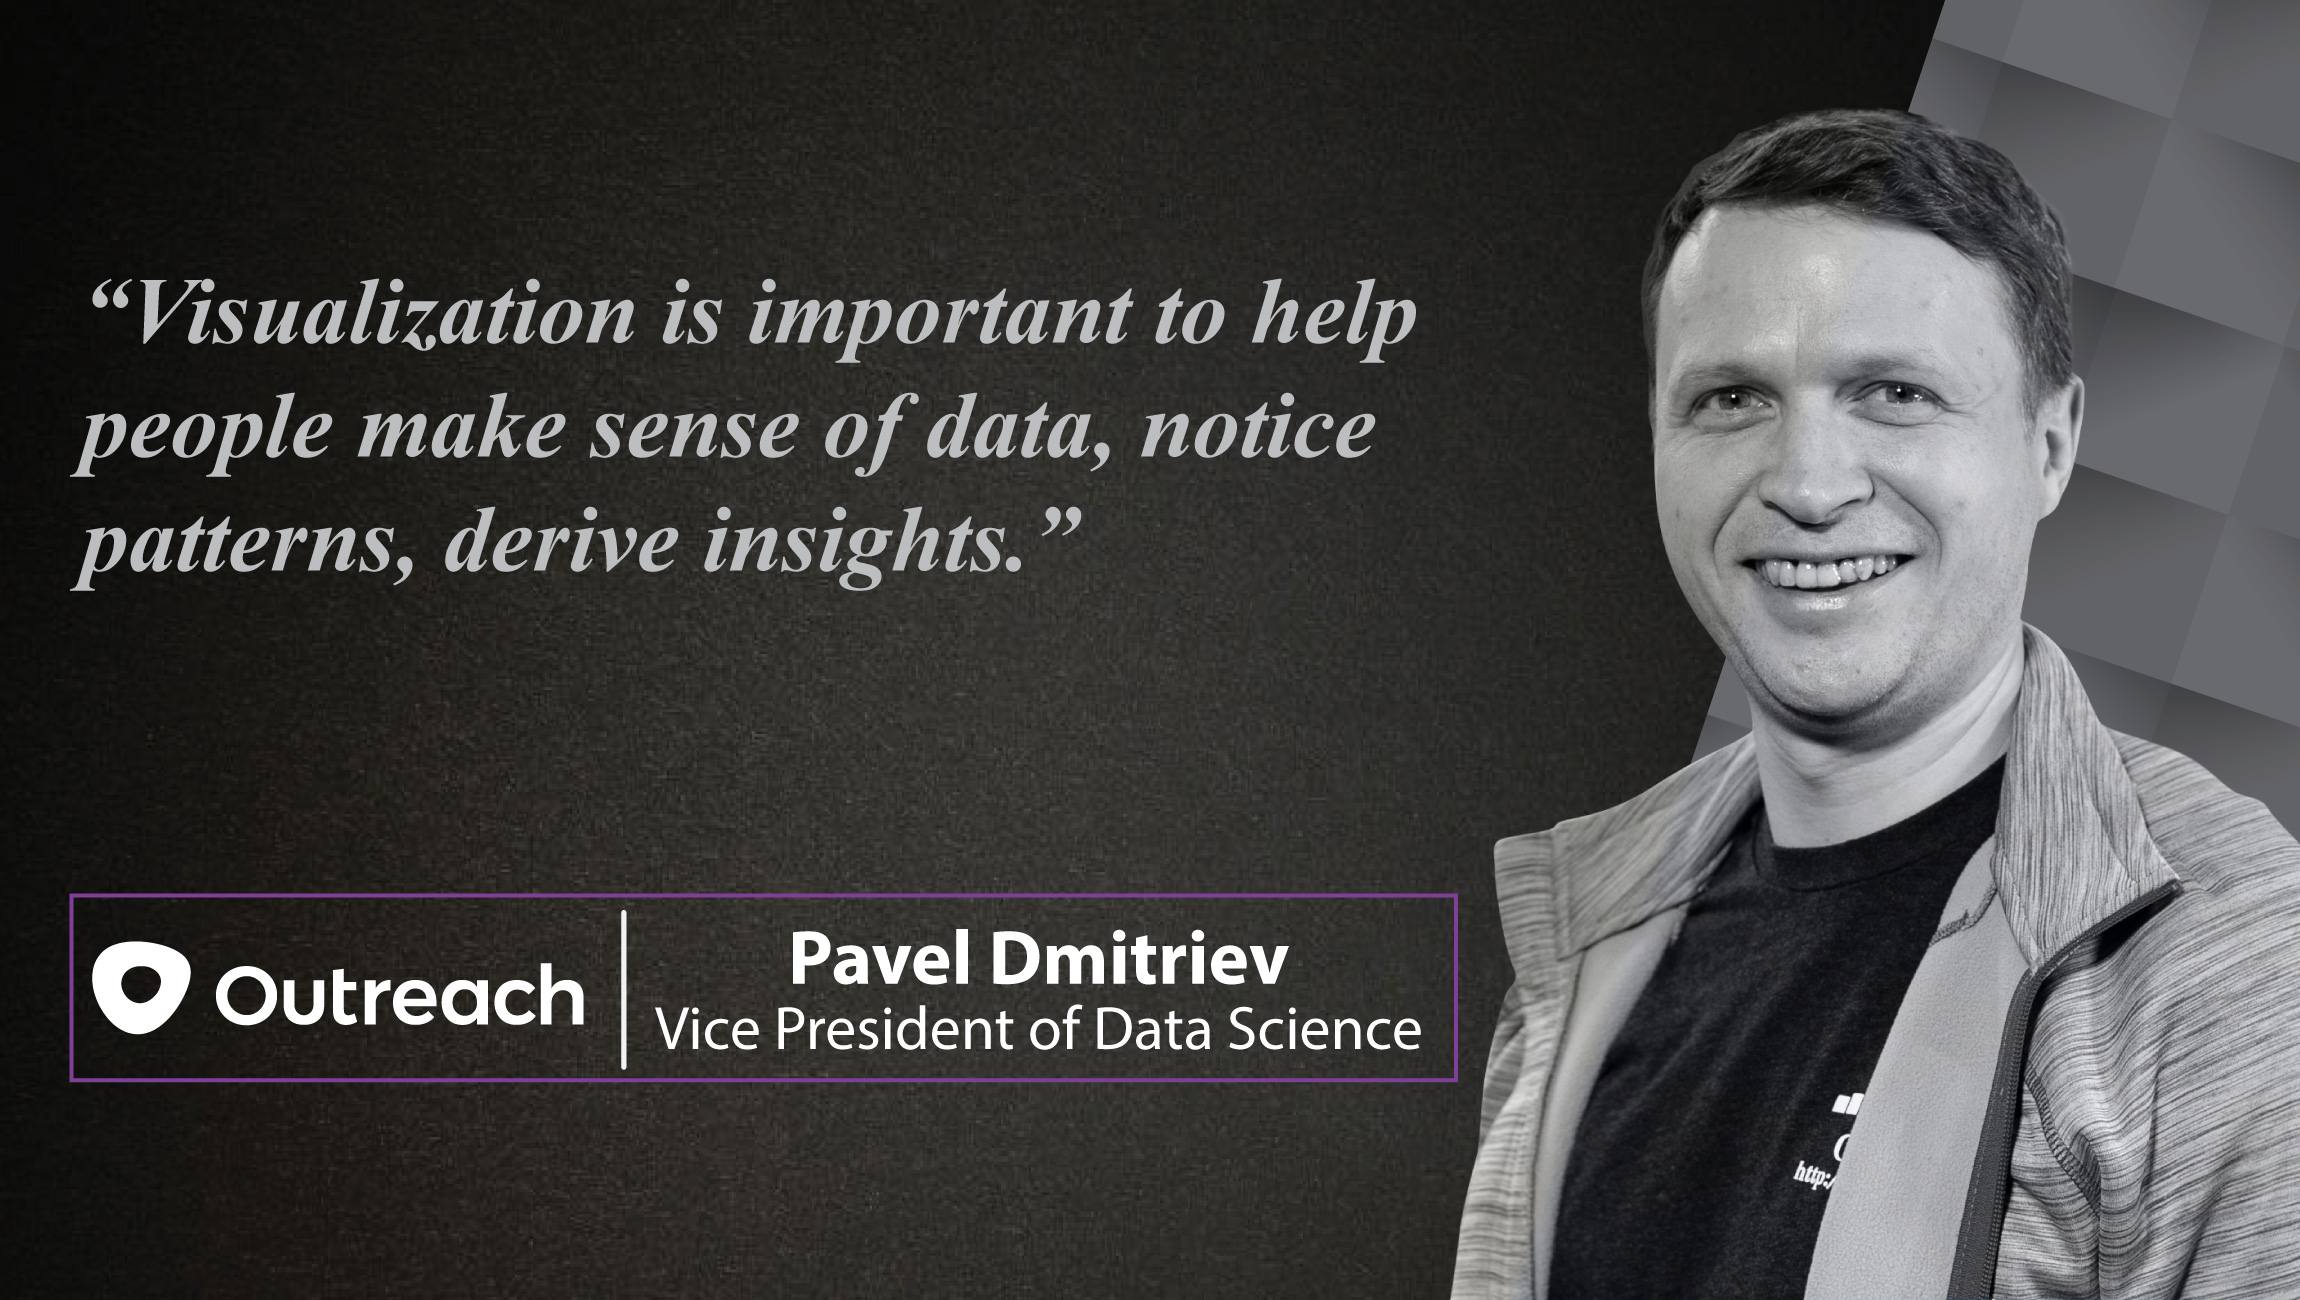 AiThority Interview with Pavel Dmitriev, Vice President of Data Science at Outreach.io/Data Science